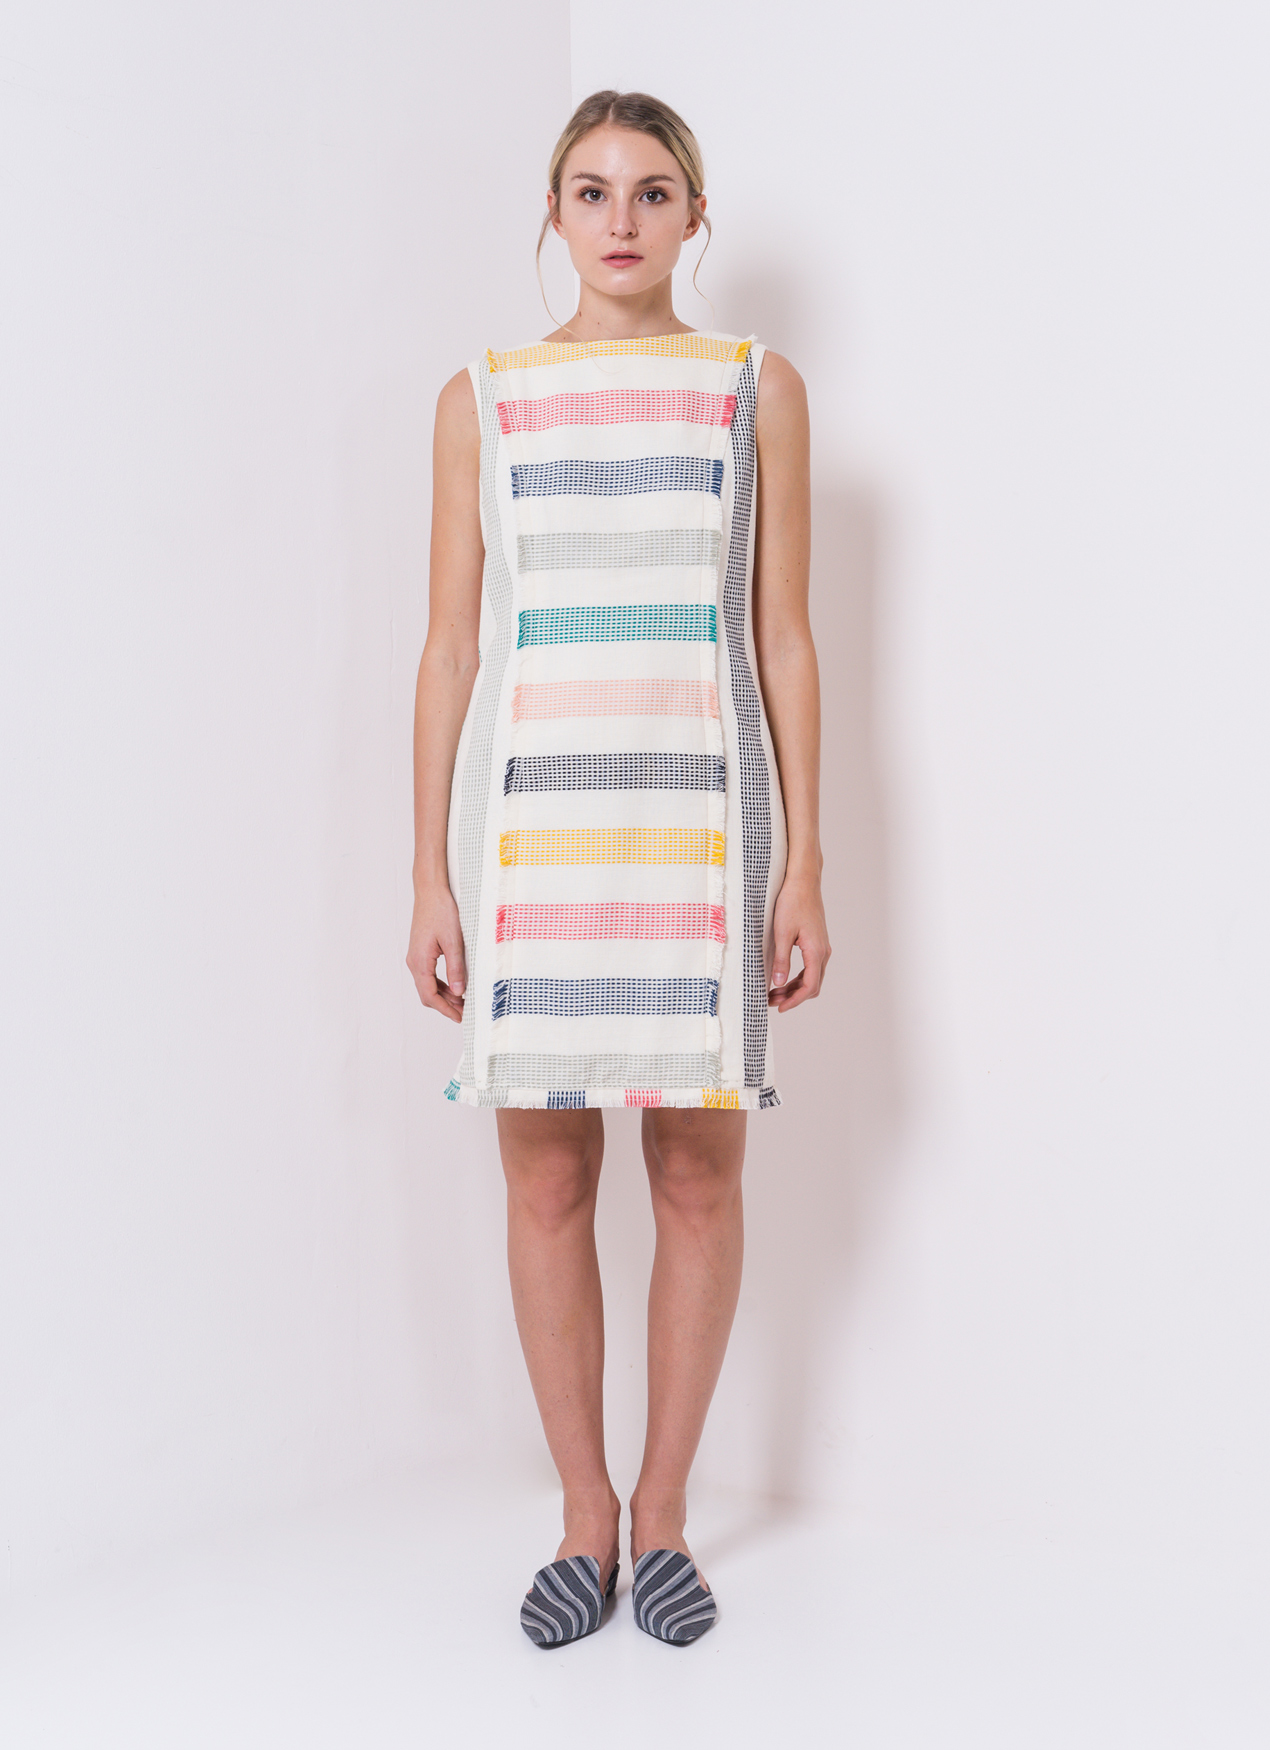 IKAT Indonesia by Didiet Maulana Multicolor Delilah Dress